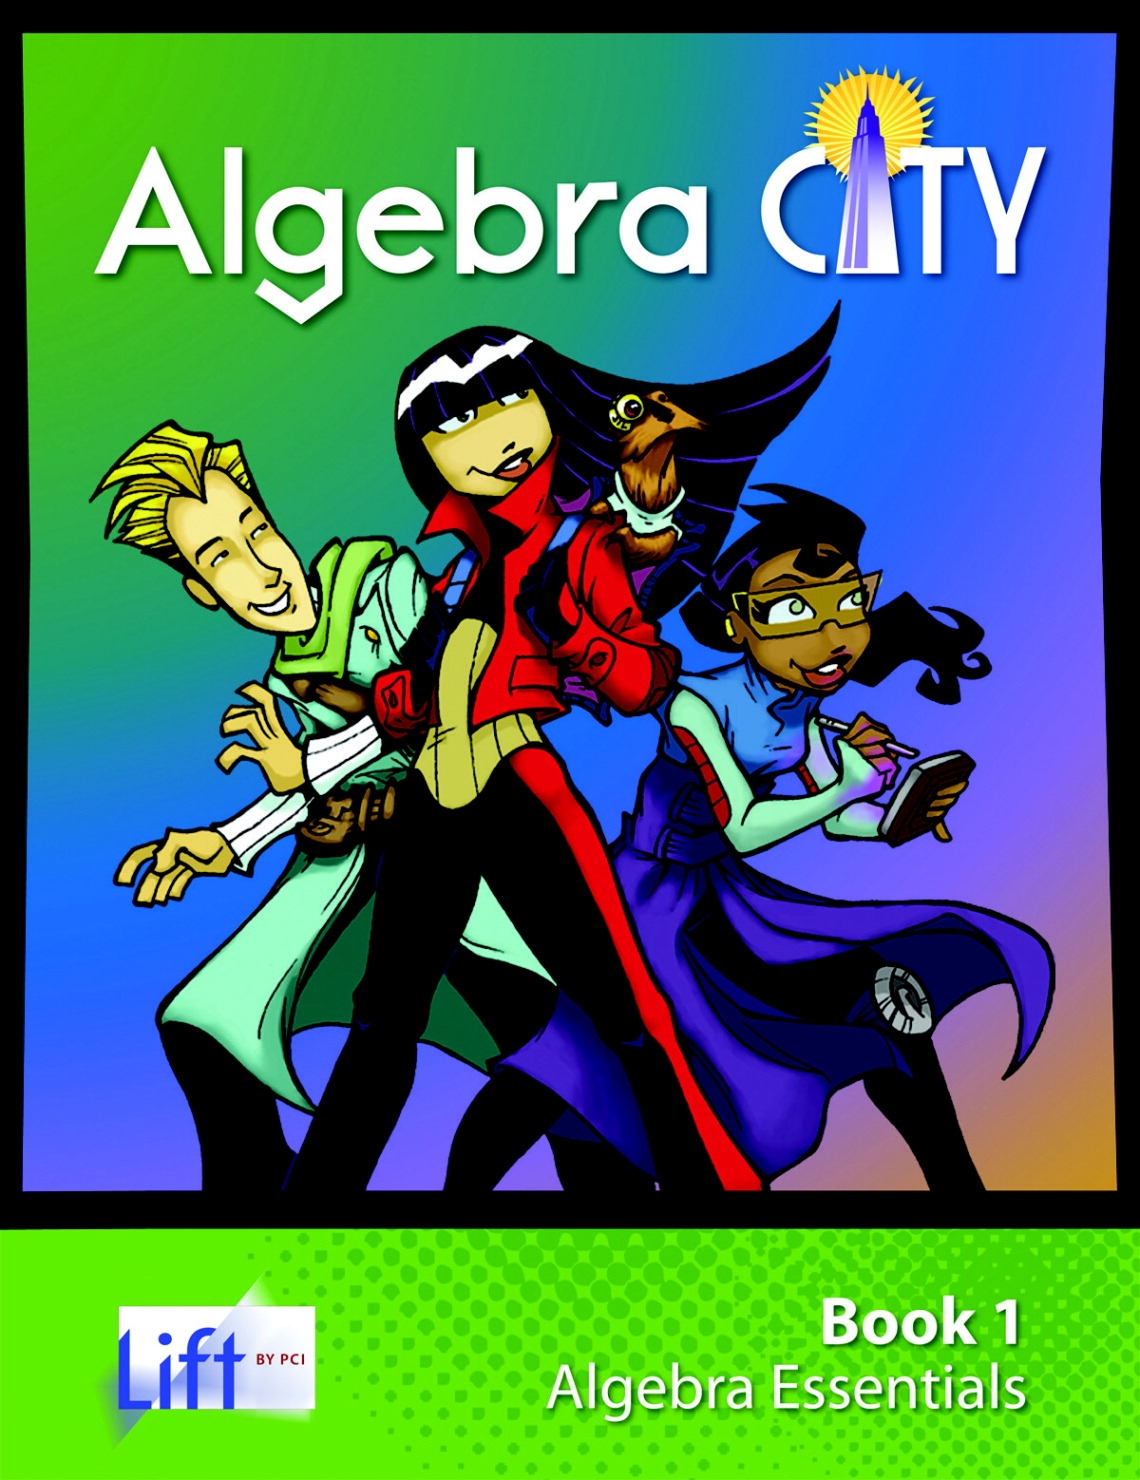 Pci Educational Publishing Algebra City Student Edition Resource Set; 1 Student Login; Set Of 4 - 1480683 - Special Populations Children Special Needs Gaint Leap Sensory Resources Books 1480683